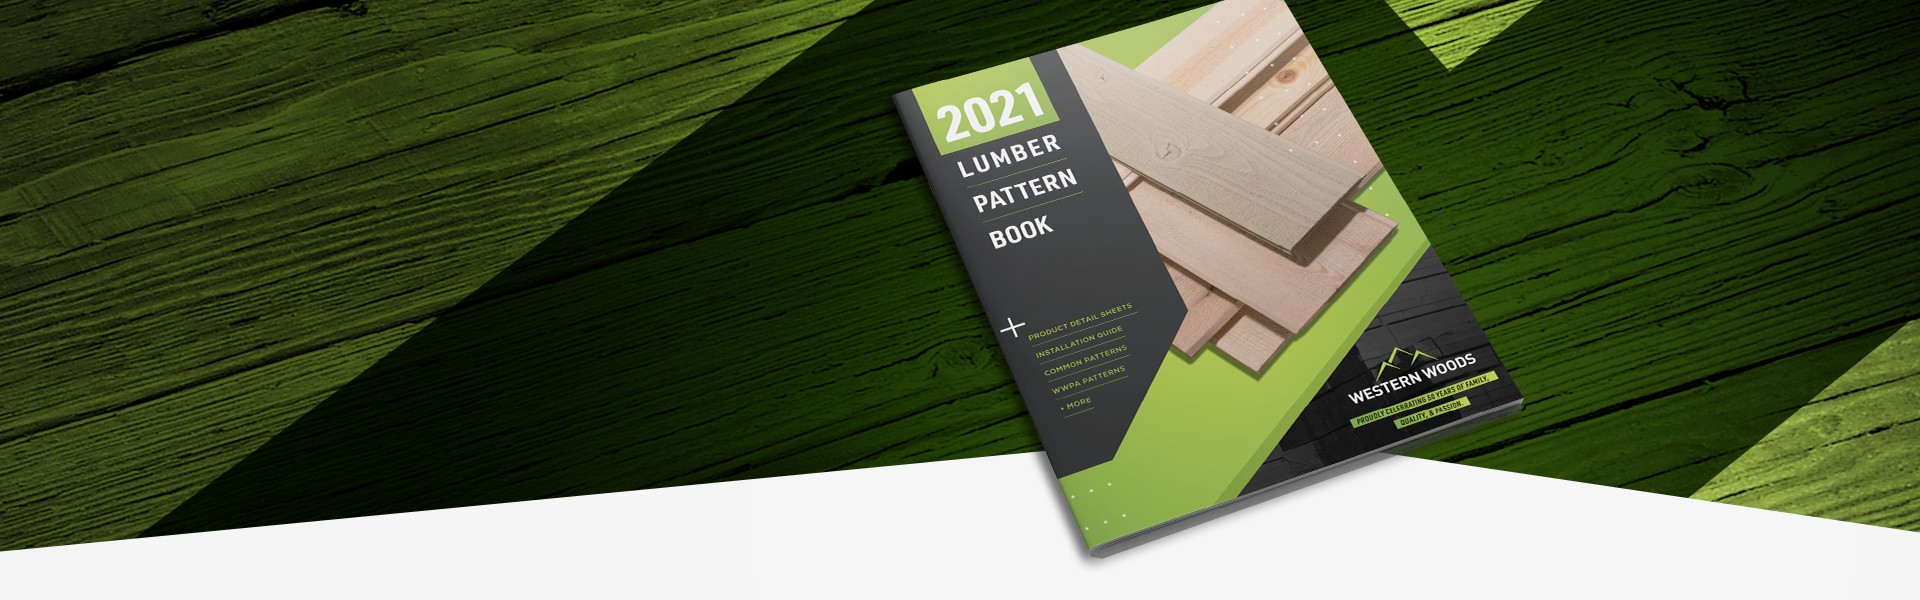 ALL-NEW LUMBER PATTERN BOOK